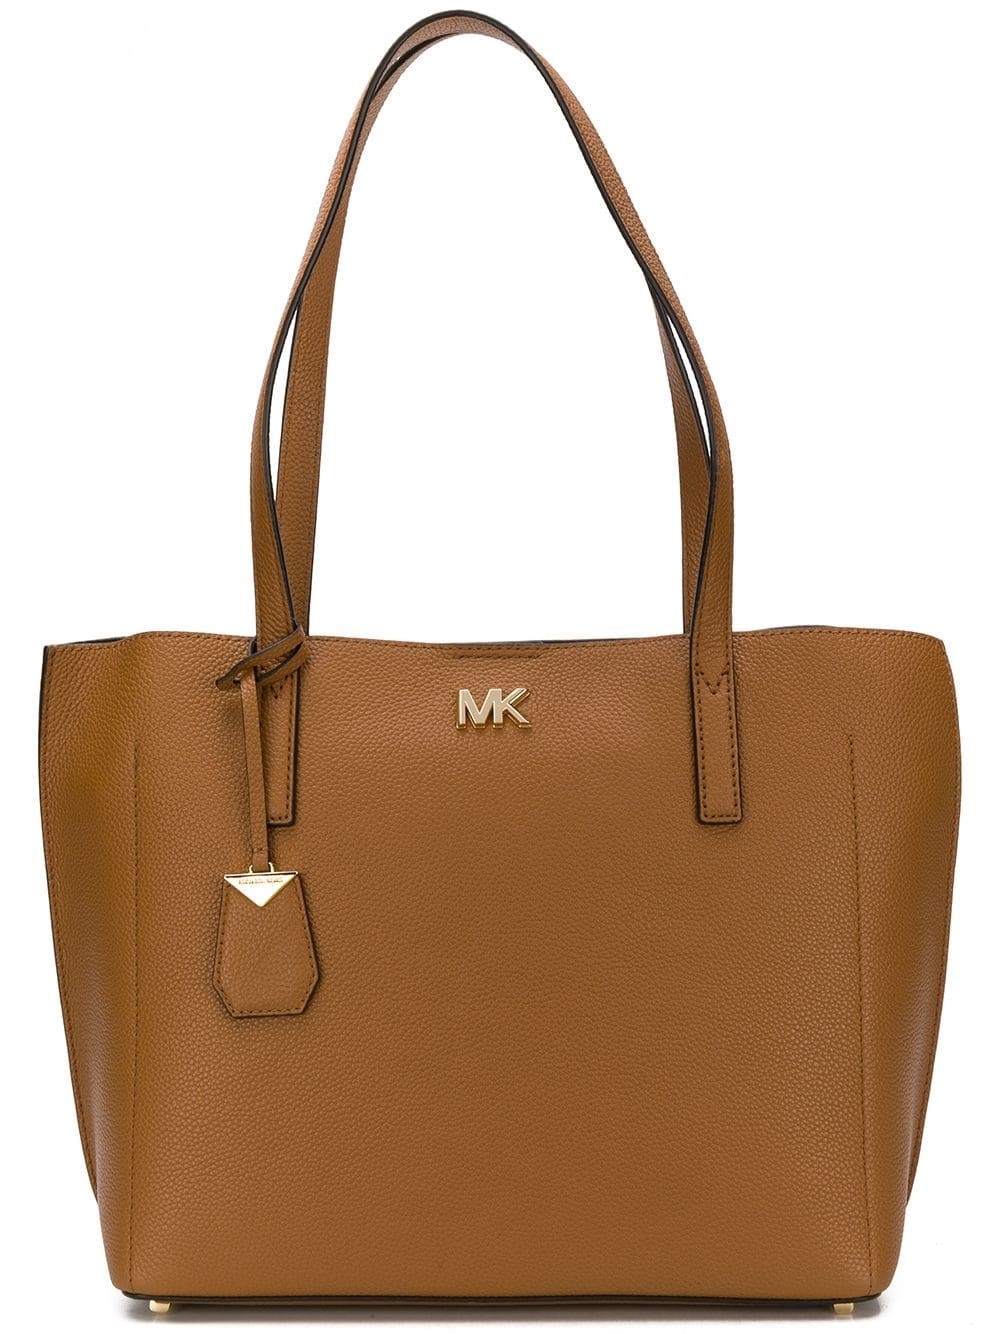 328d68f91487 michael kors mk LOGO SHOPPER TOTE available on montiboutique.com - 24593